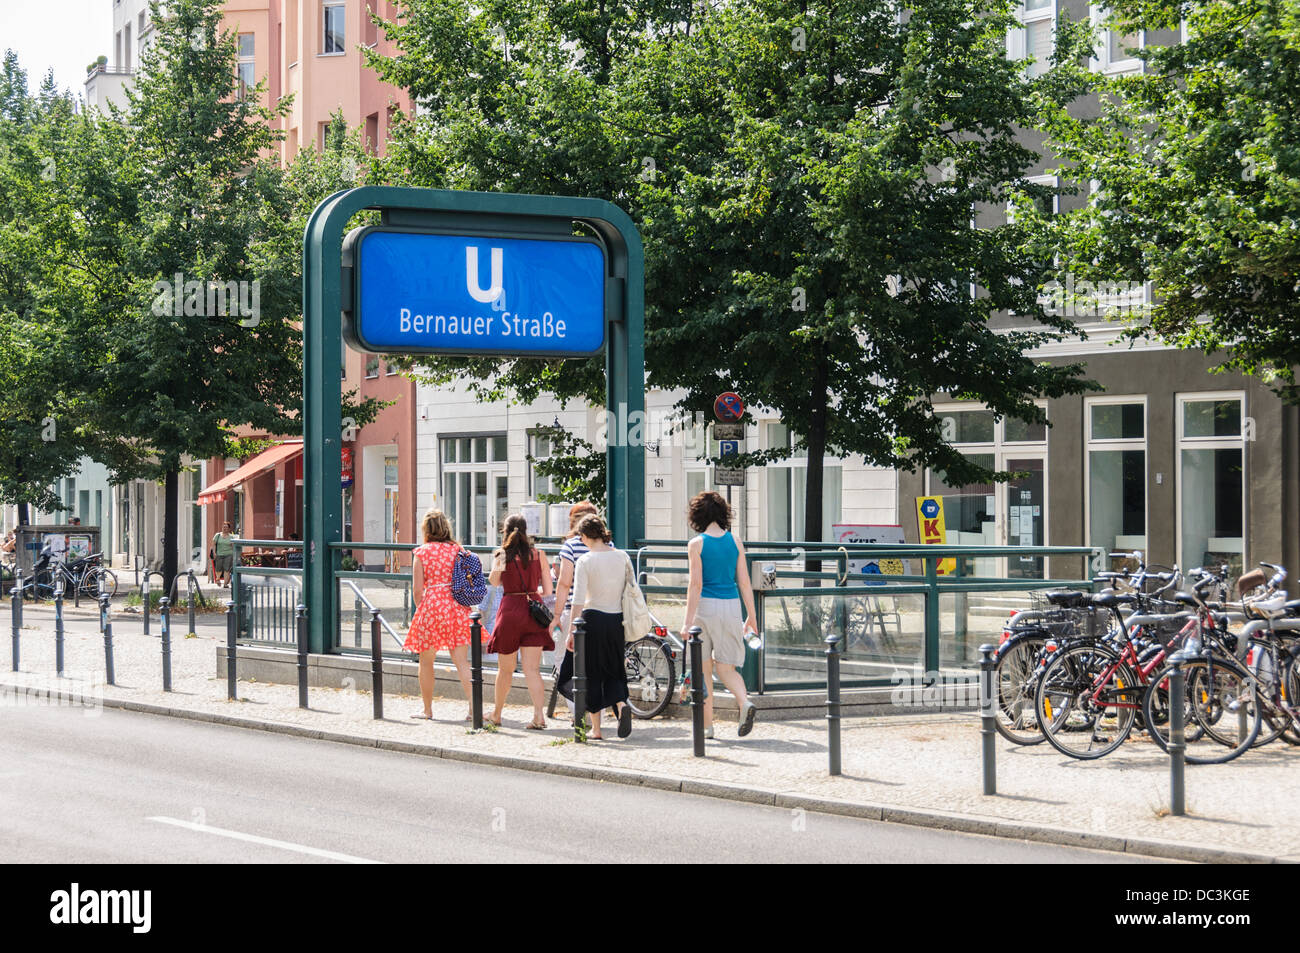 Summer in the city, urban life. Young women, teenagers, in summer clothing at the subway station Bernauer Strasse Stock Photo